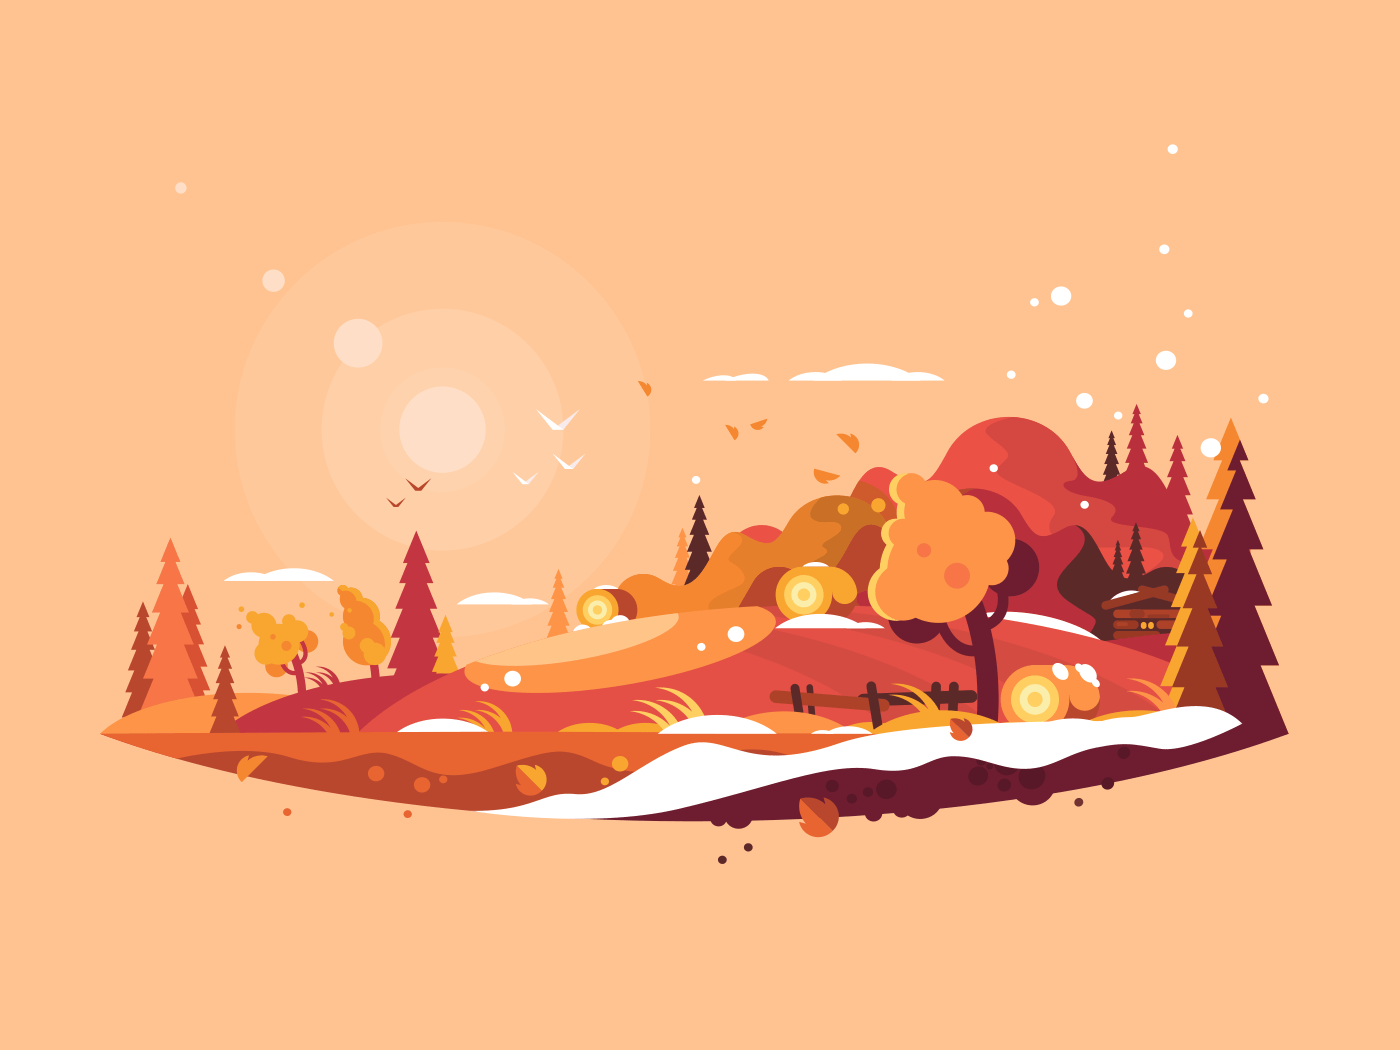 Landscape autumn illustration